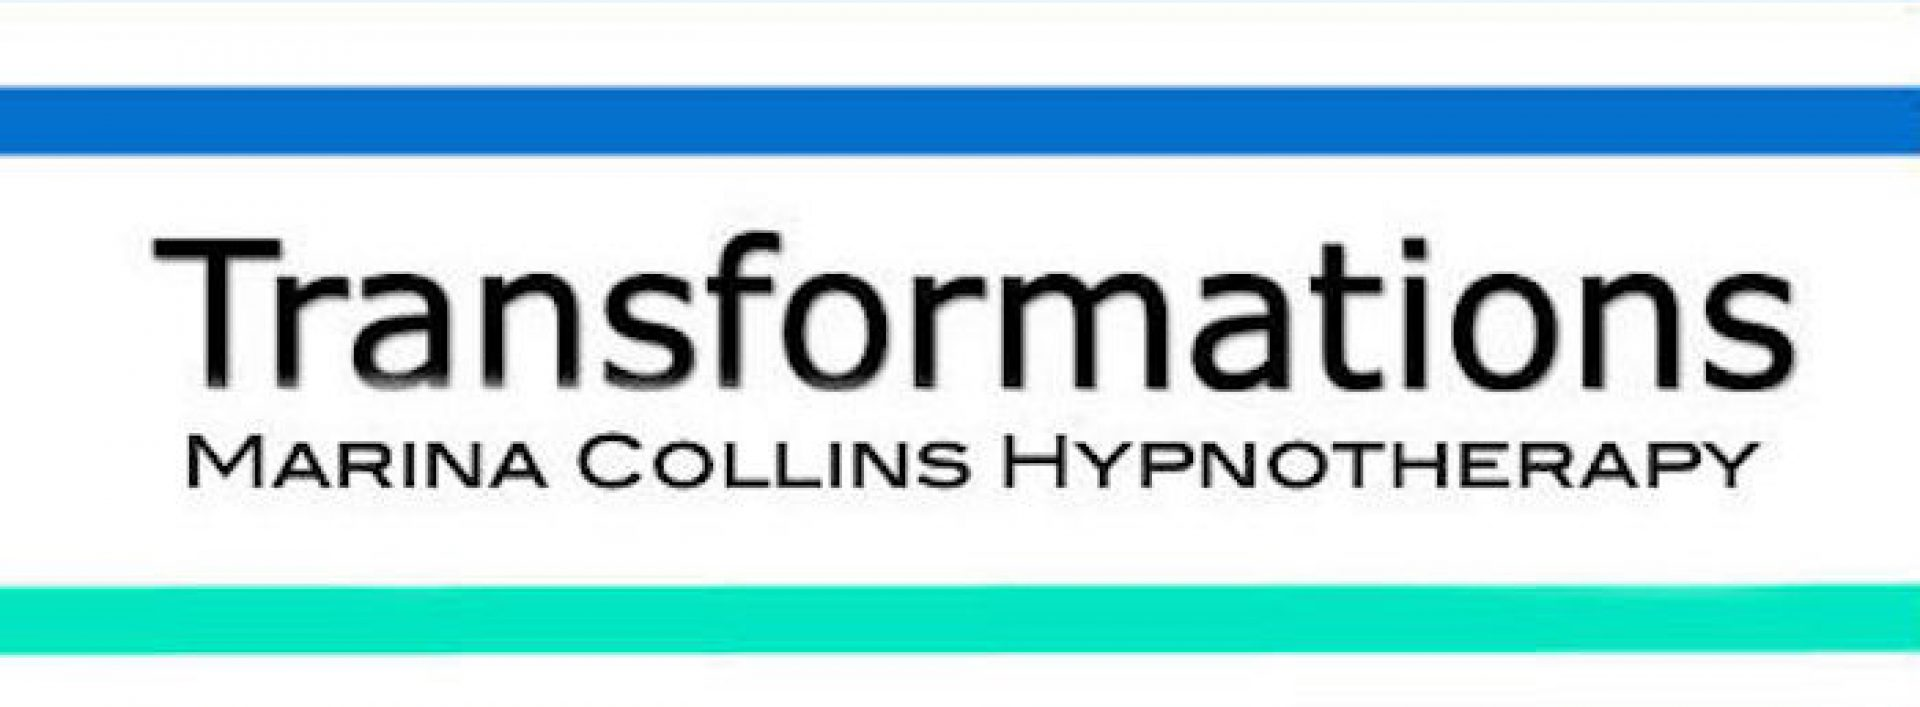 Transformations logo Marina Collins Hypnotherapy Anxiety specialist